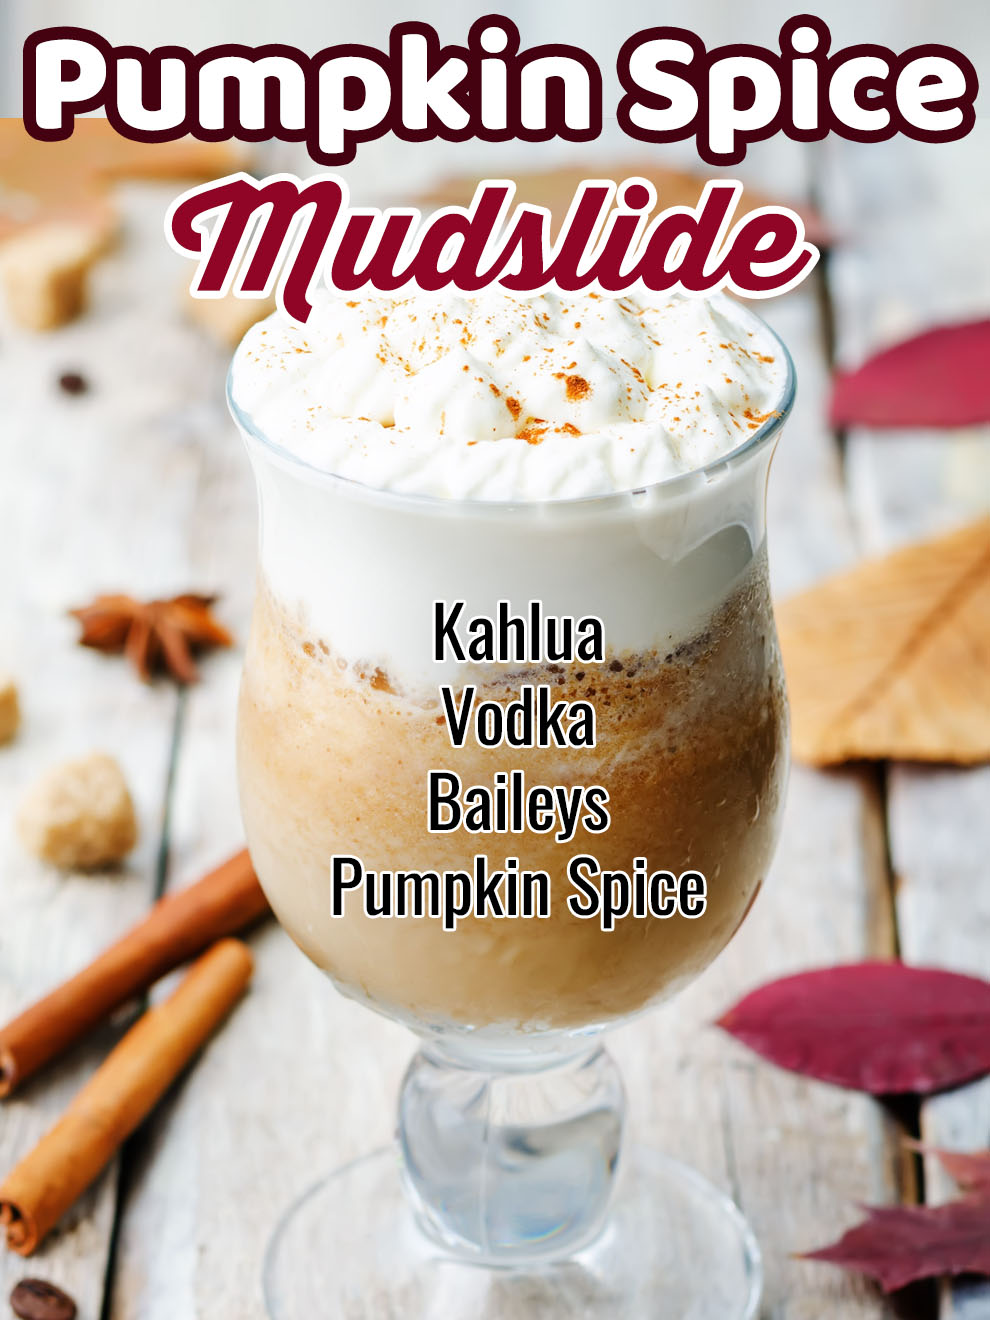 A Pumpkin Spice Mudslide is the best frozen fall drink recipe. Get ready for falling leaves and football games with this Autumn cocktail.